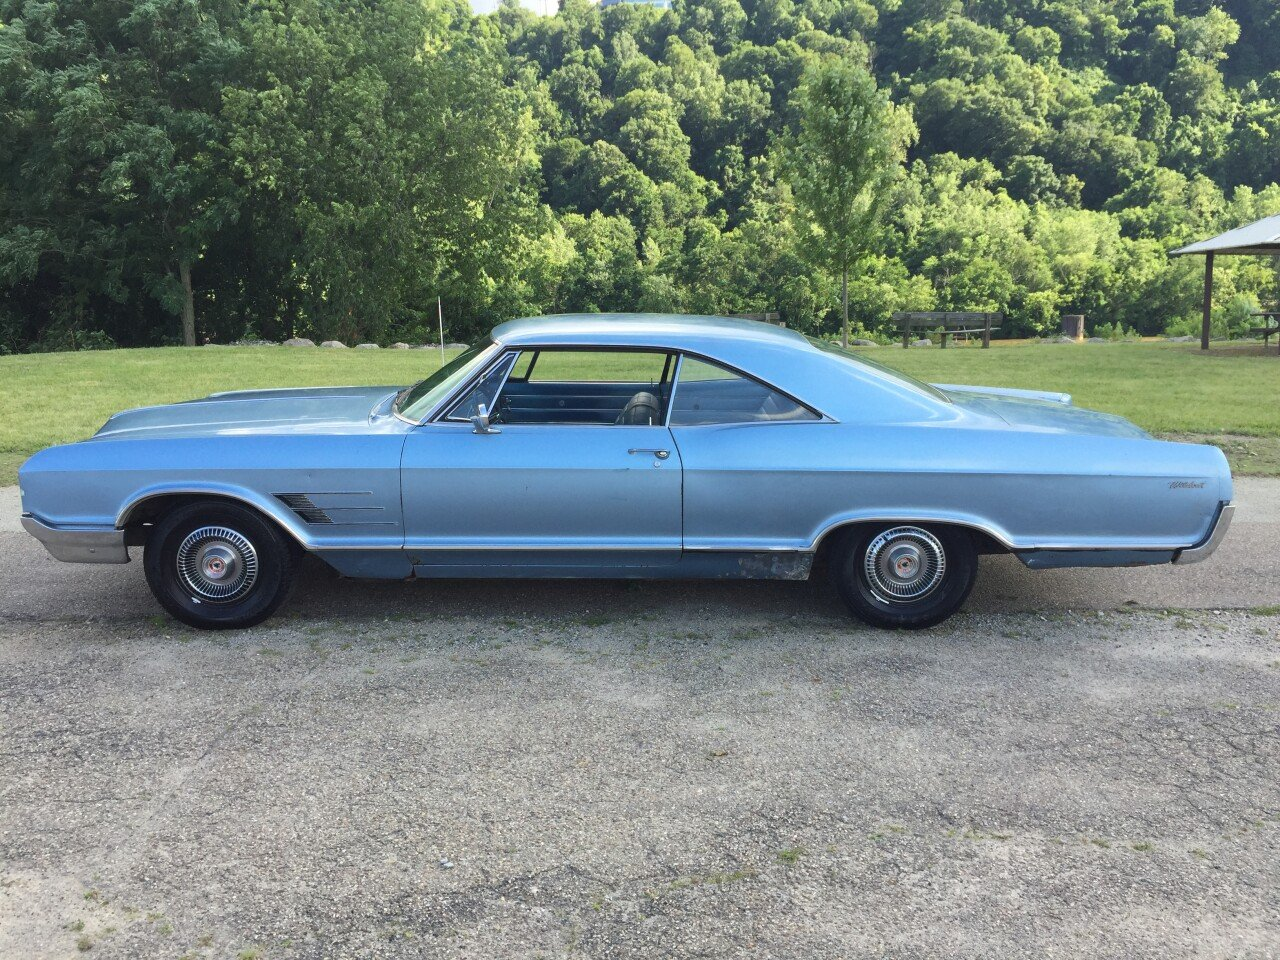 Car Auctions In Pa >> 1965 Buick Wildcat for sale near Cheswick, Pennsylvania 15024 - Classics on Autotrader